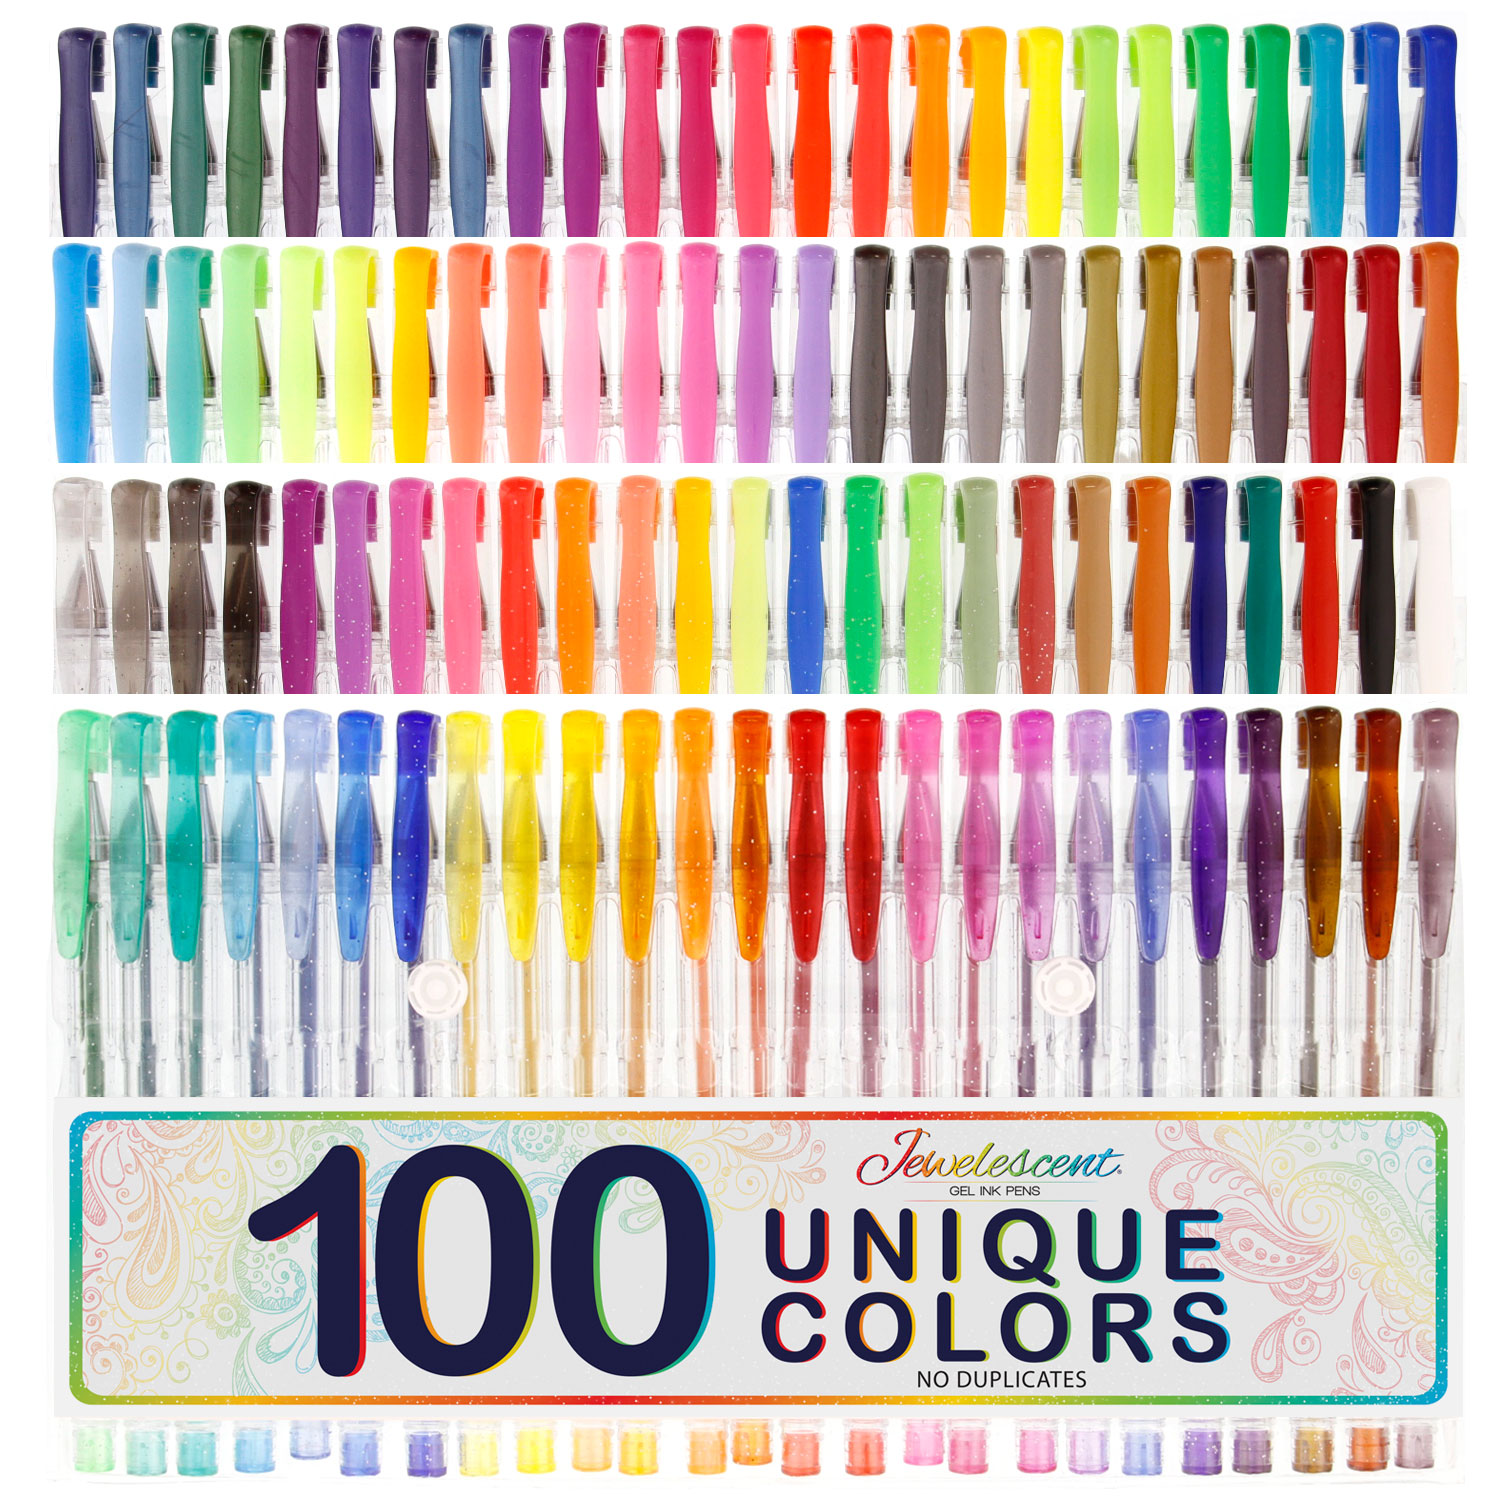 US Art Supply Jewelescent 100 Unique Color Gel Pen Set Artist ...